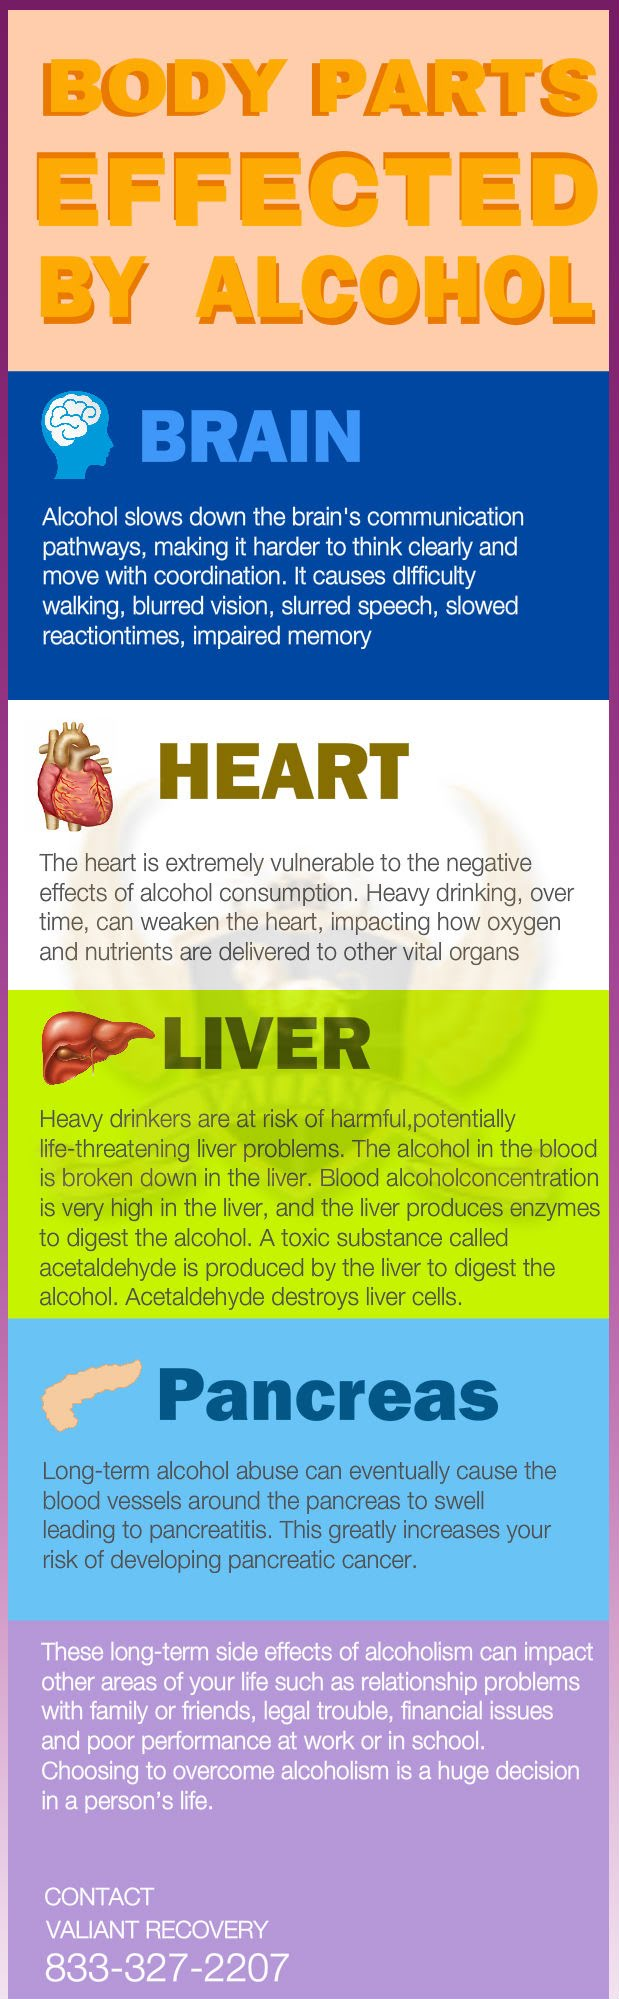 Body Parts Effected by Alcohol